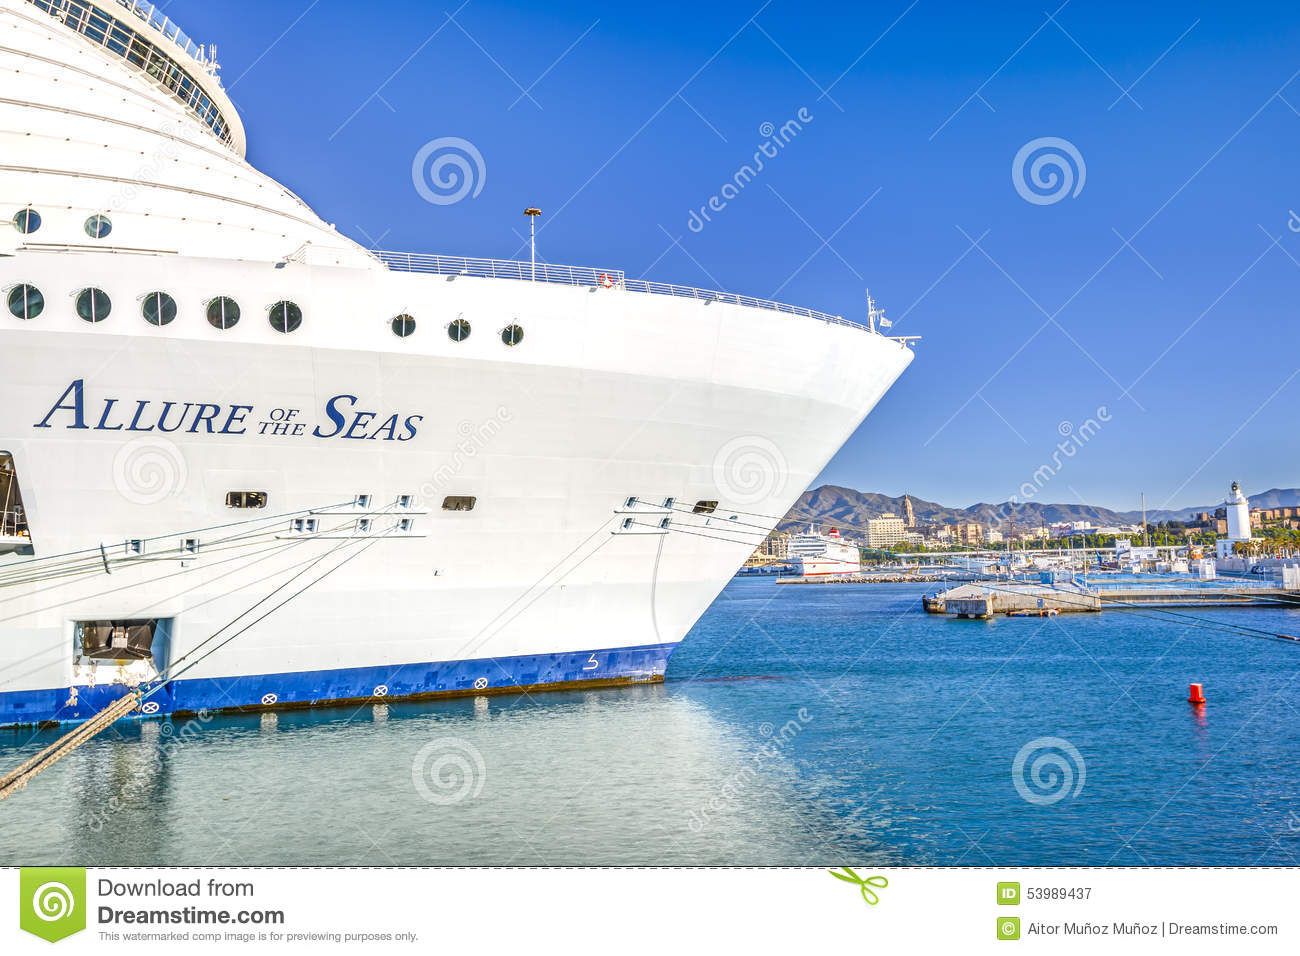 Malaga spain on april 29 2015 the largest cruise ship in the world